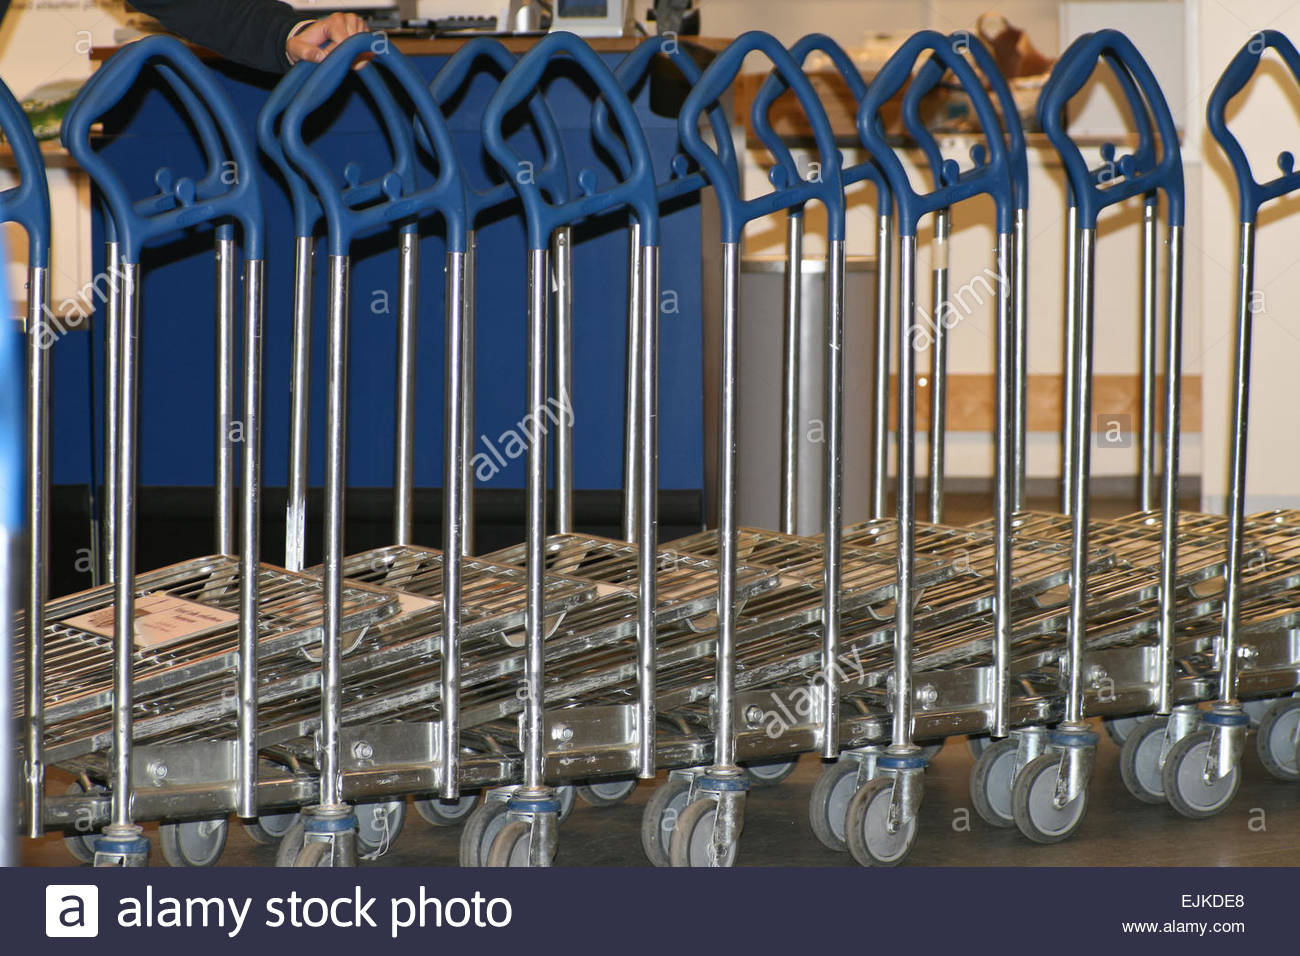 Supermarket trolleys for buyers - Stock Image